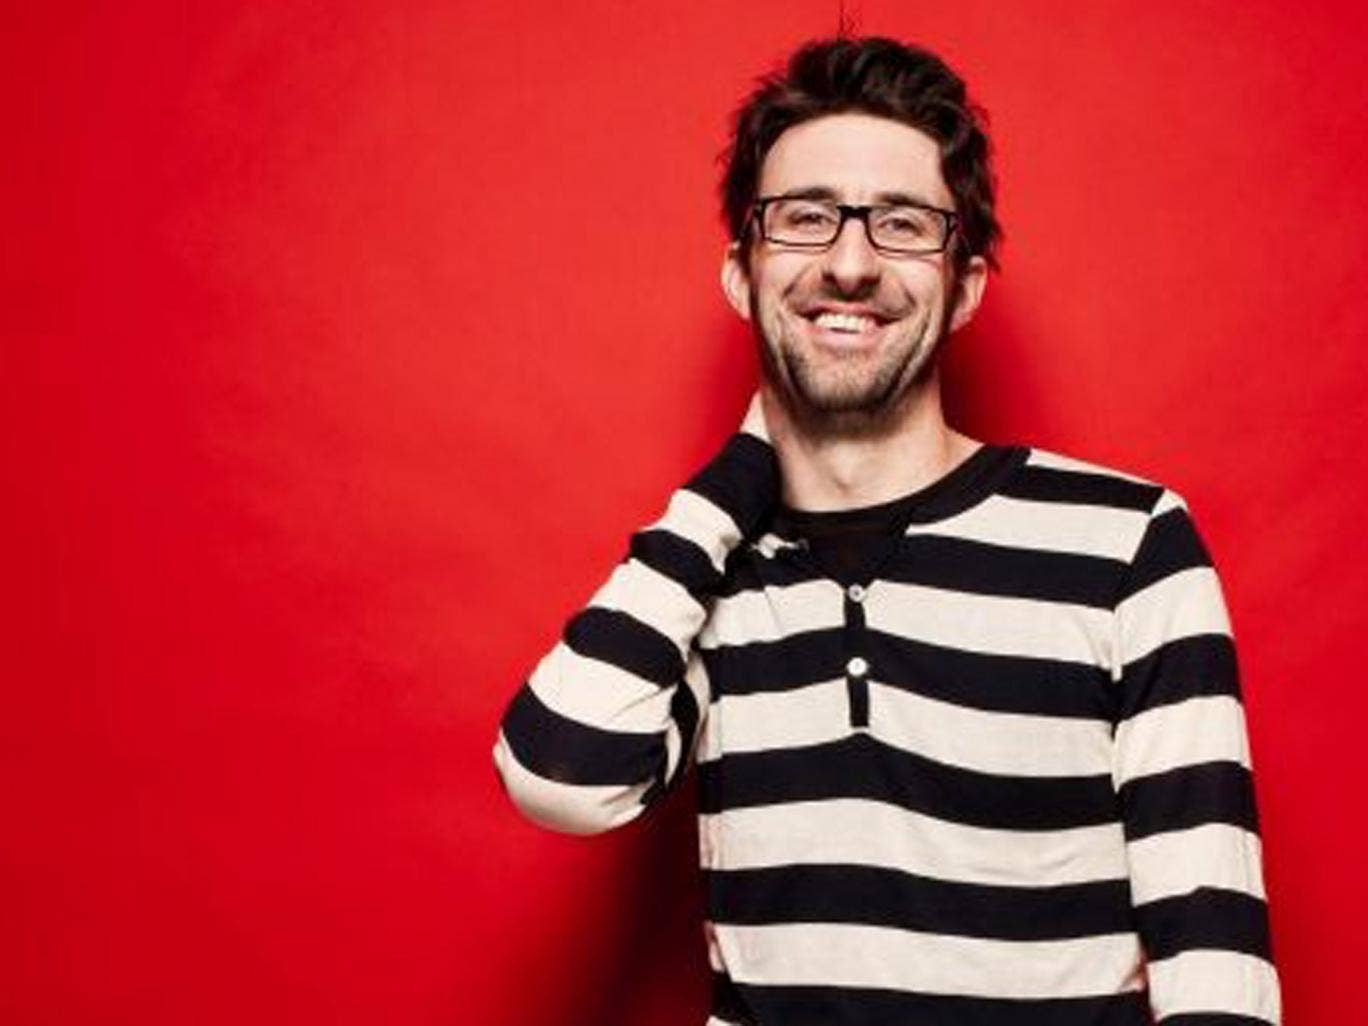 Mark Watson plans 25-hour comedy gig for charity